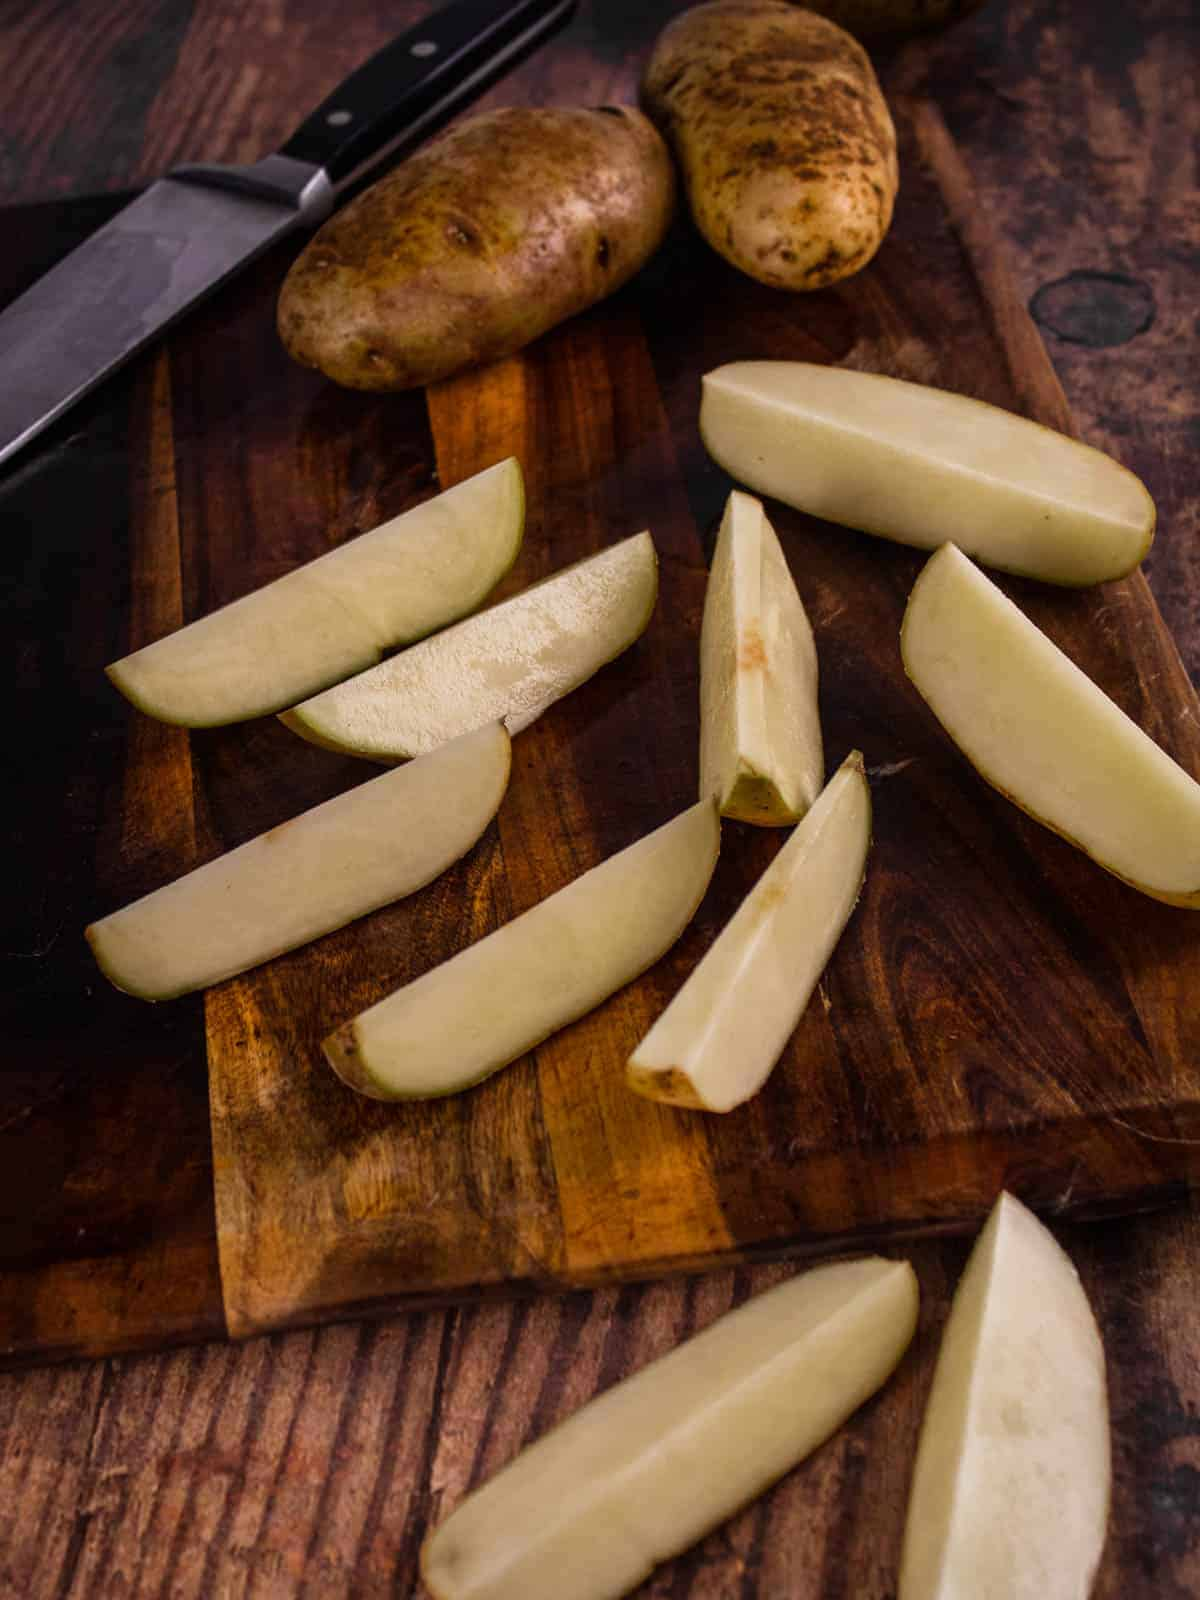 potatoes cut in wedges on a cutting board